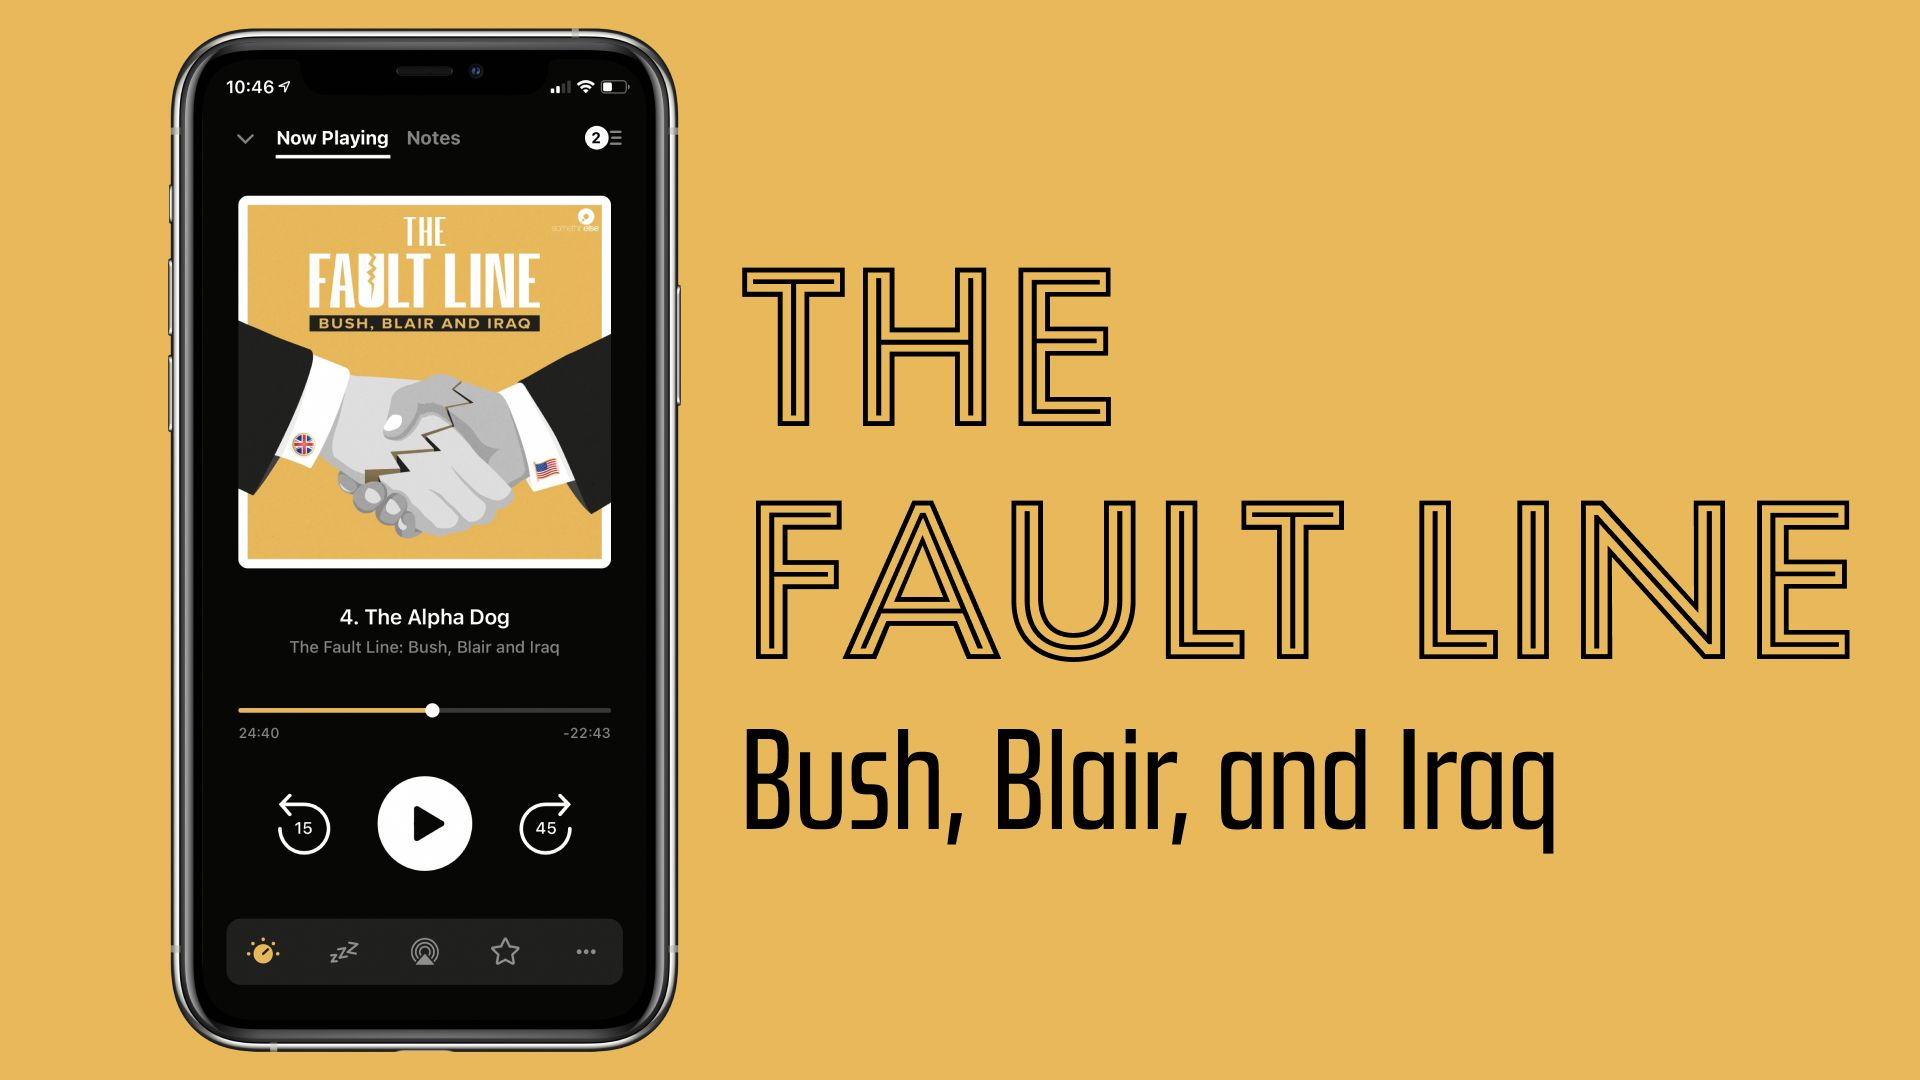 Podcast Recommendation: The Fault Line, Bush, Blair, and Iraq